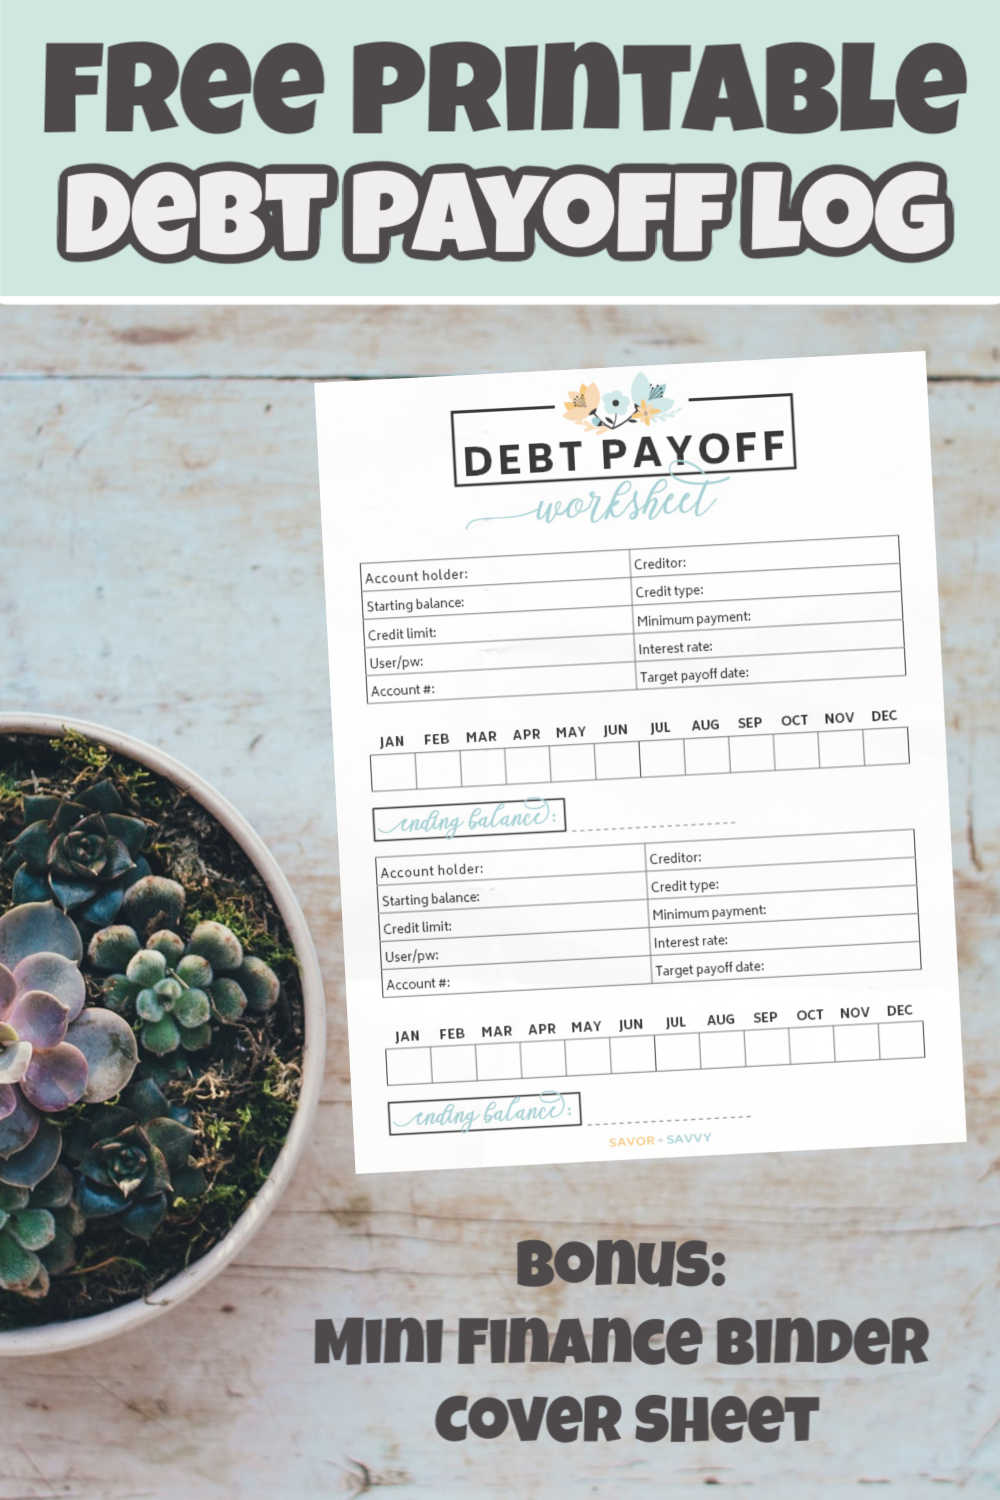 Free Debt Payoff Printable - Worksheet Tool With Tips to Pay Off Debt